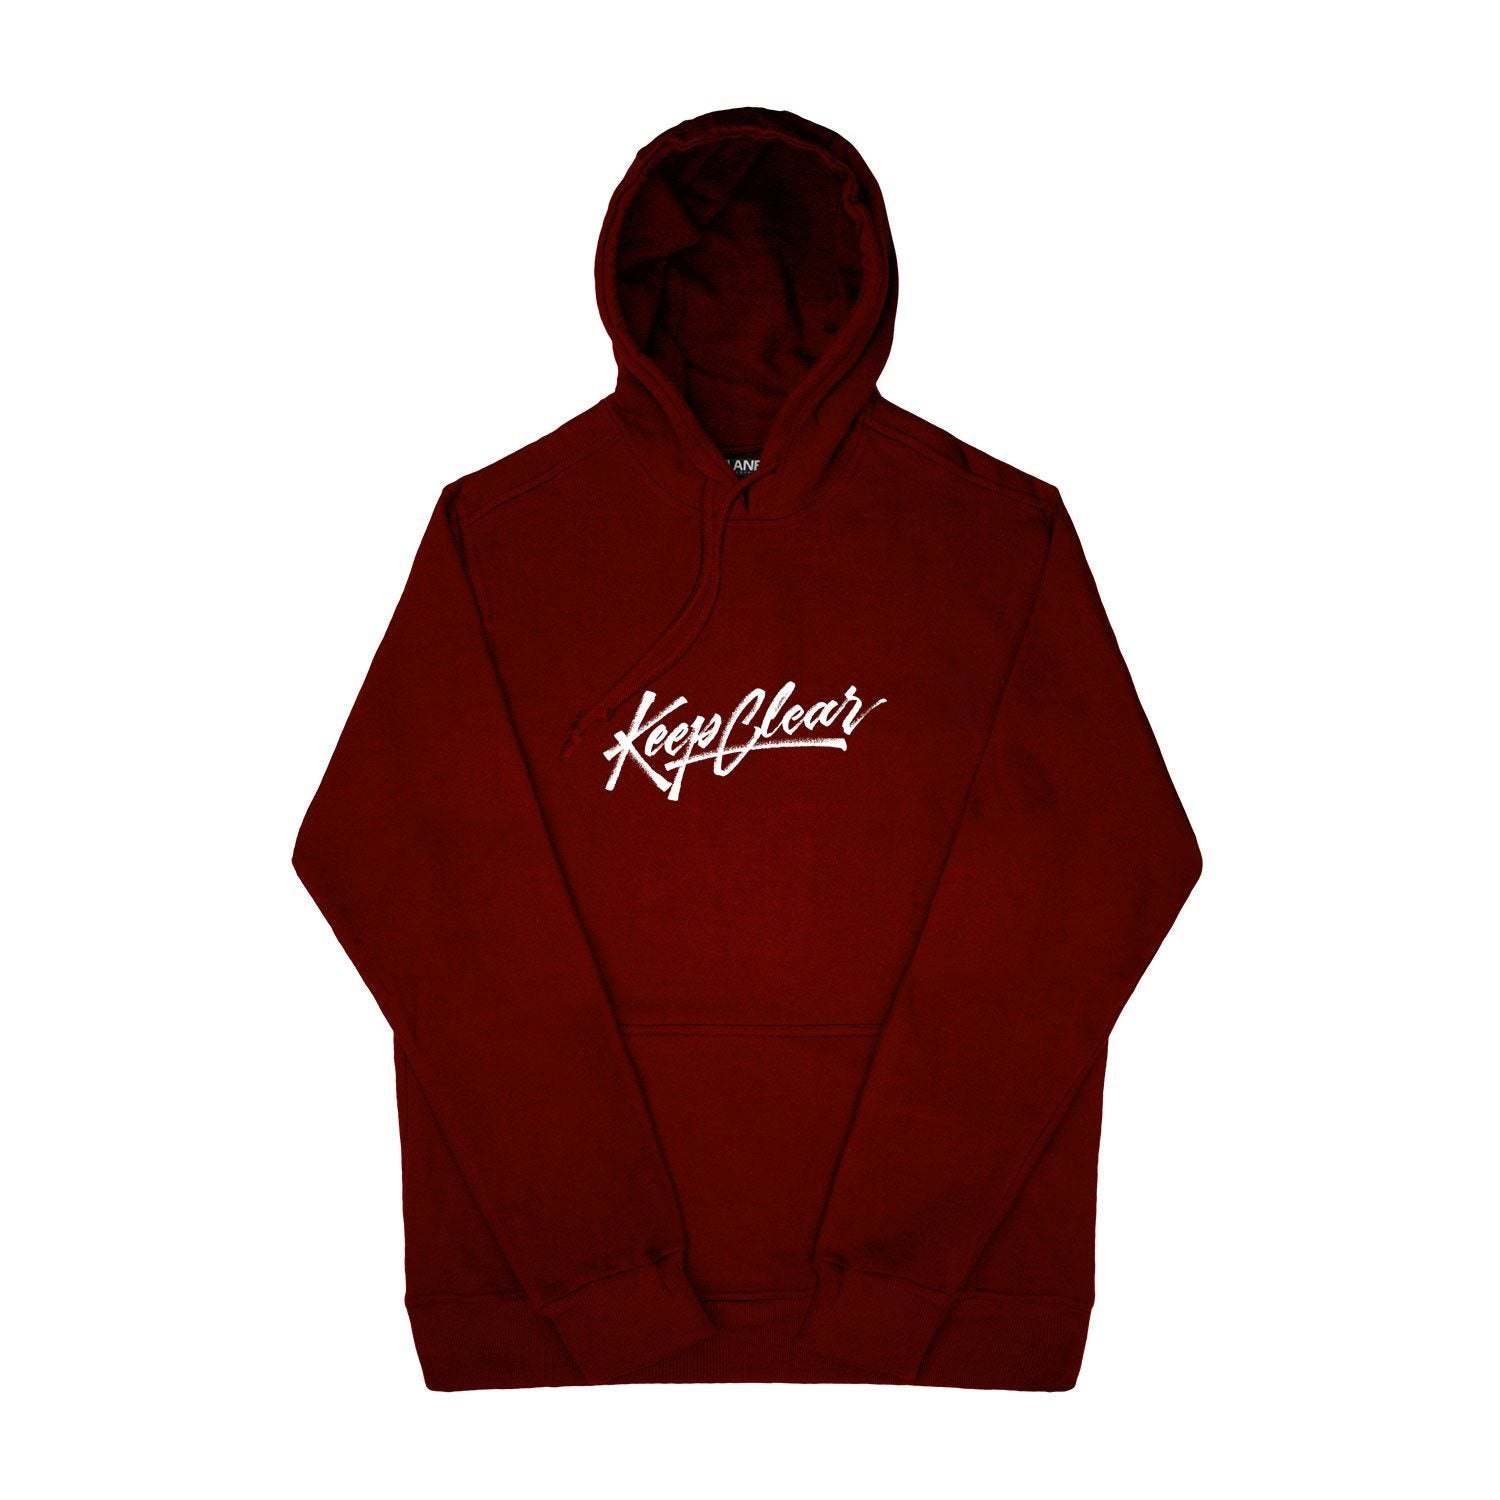 SWEAT - KEEP CLEAR MAROON HOODIE 19